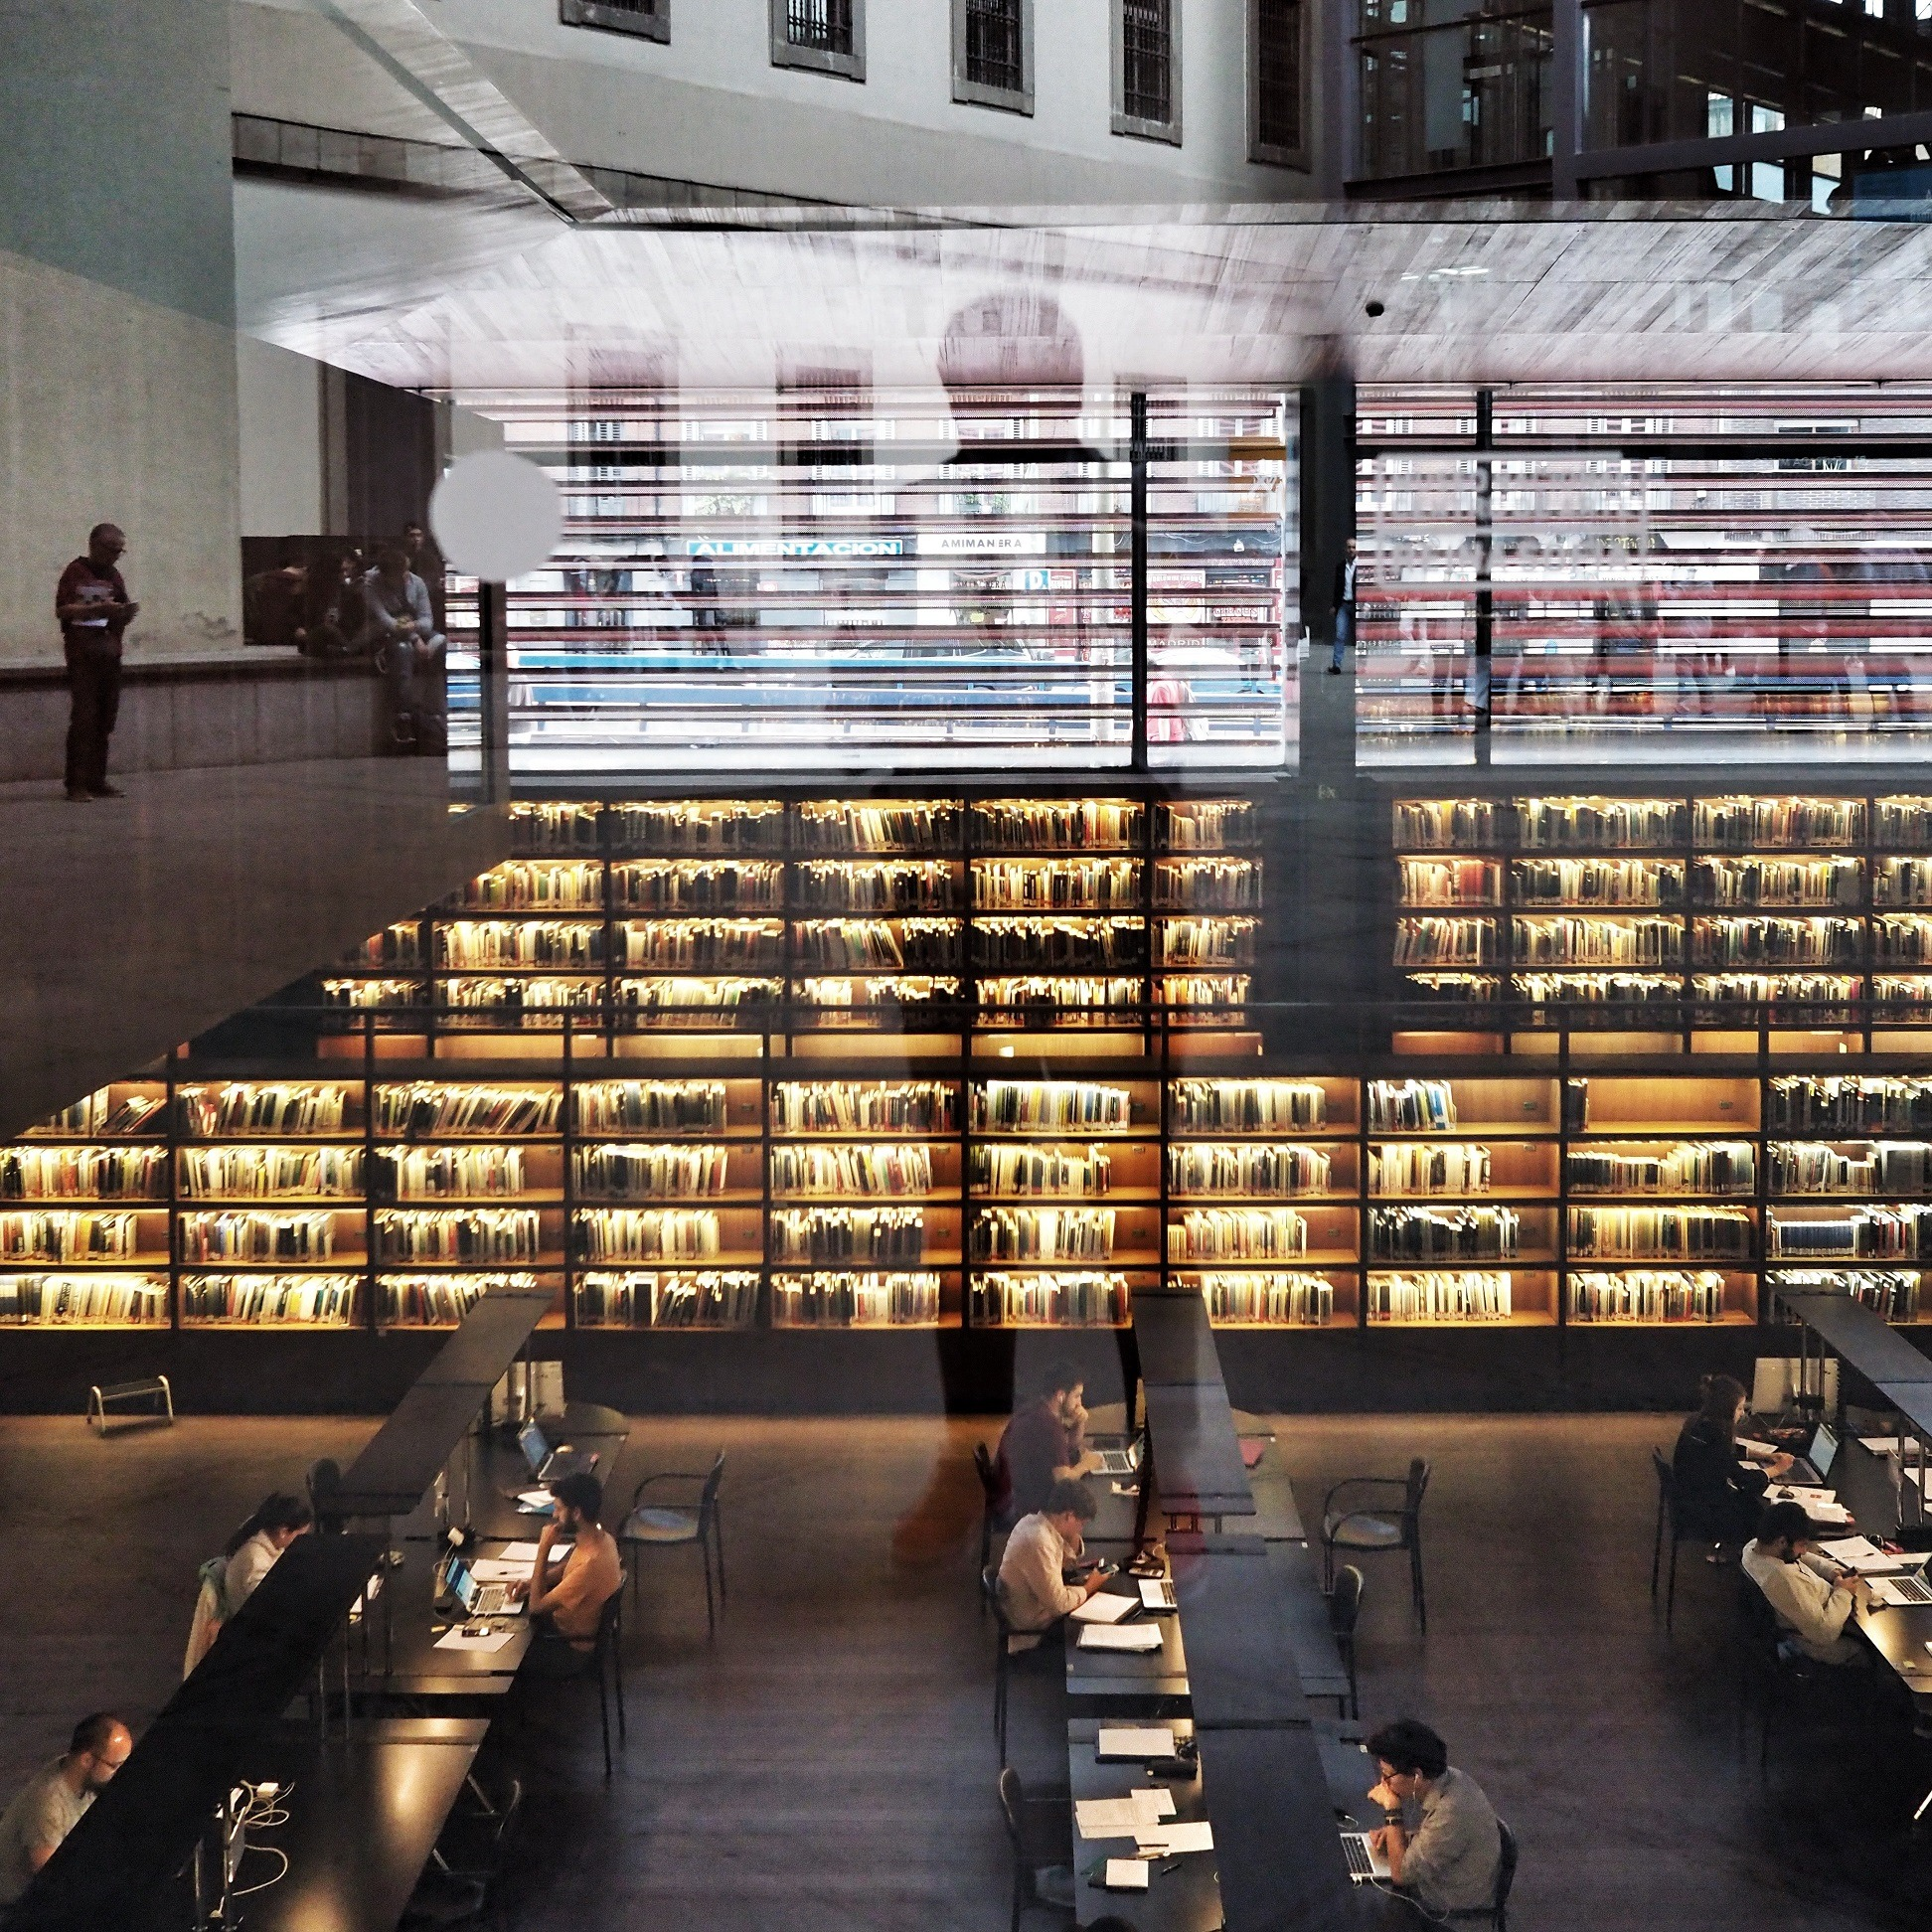 Photo of the interior of a modern library